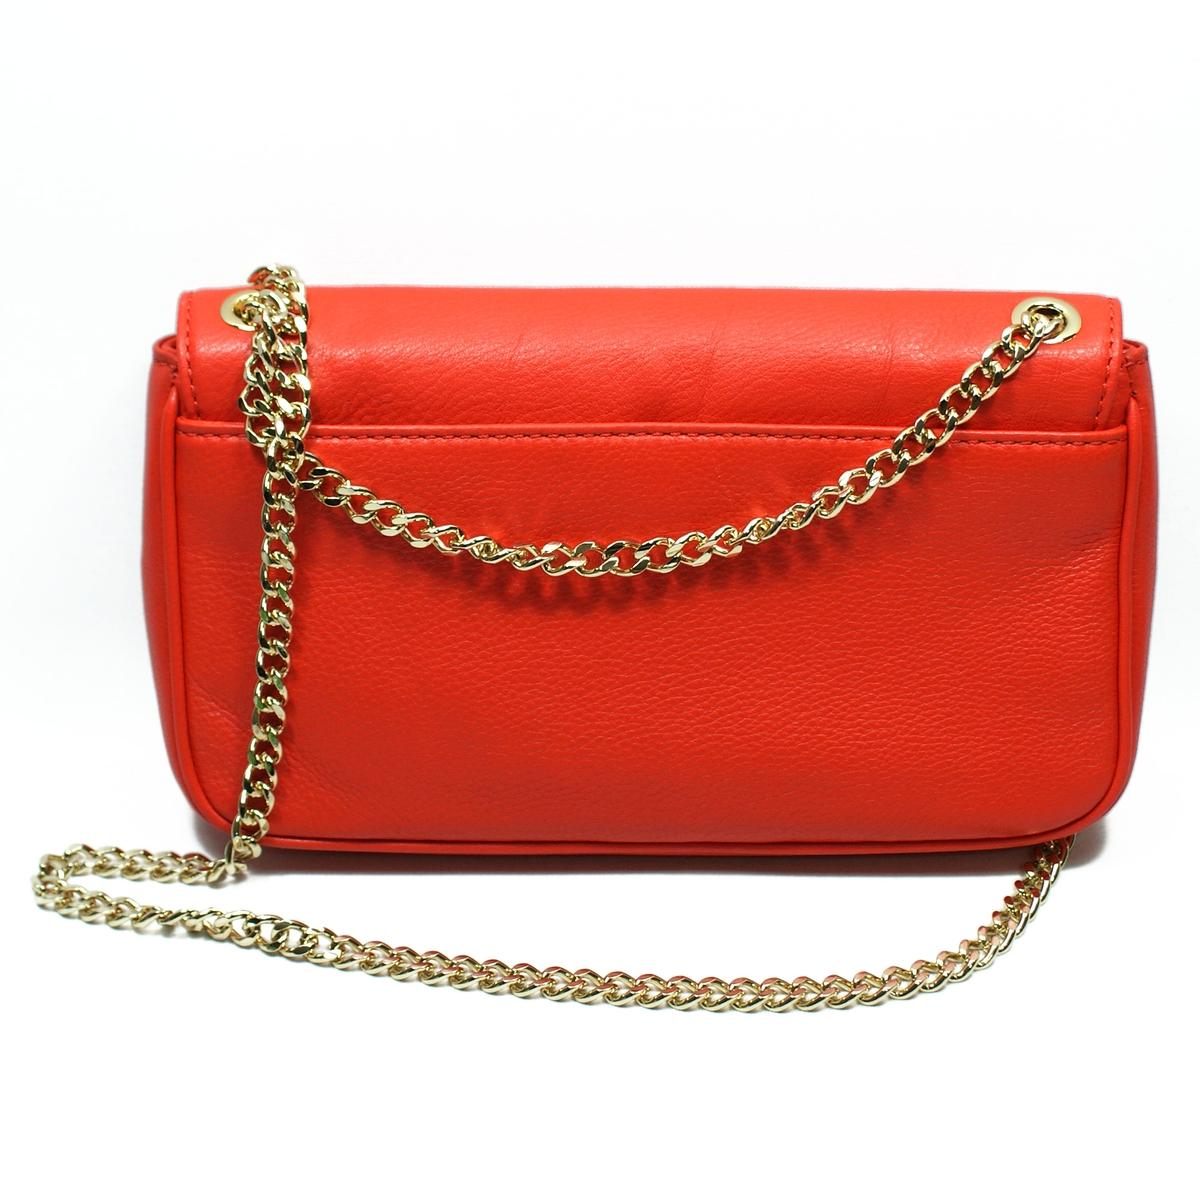 d3eca6f19f218 Home · Michael Kors · Jet Set Chain Genuine Leather Small Flap Shoulder Bag  Mandarin. CLICK THUMBNAIL TO ZOOM. Found ...